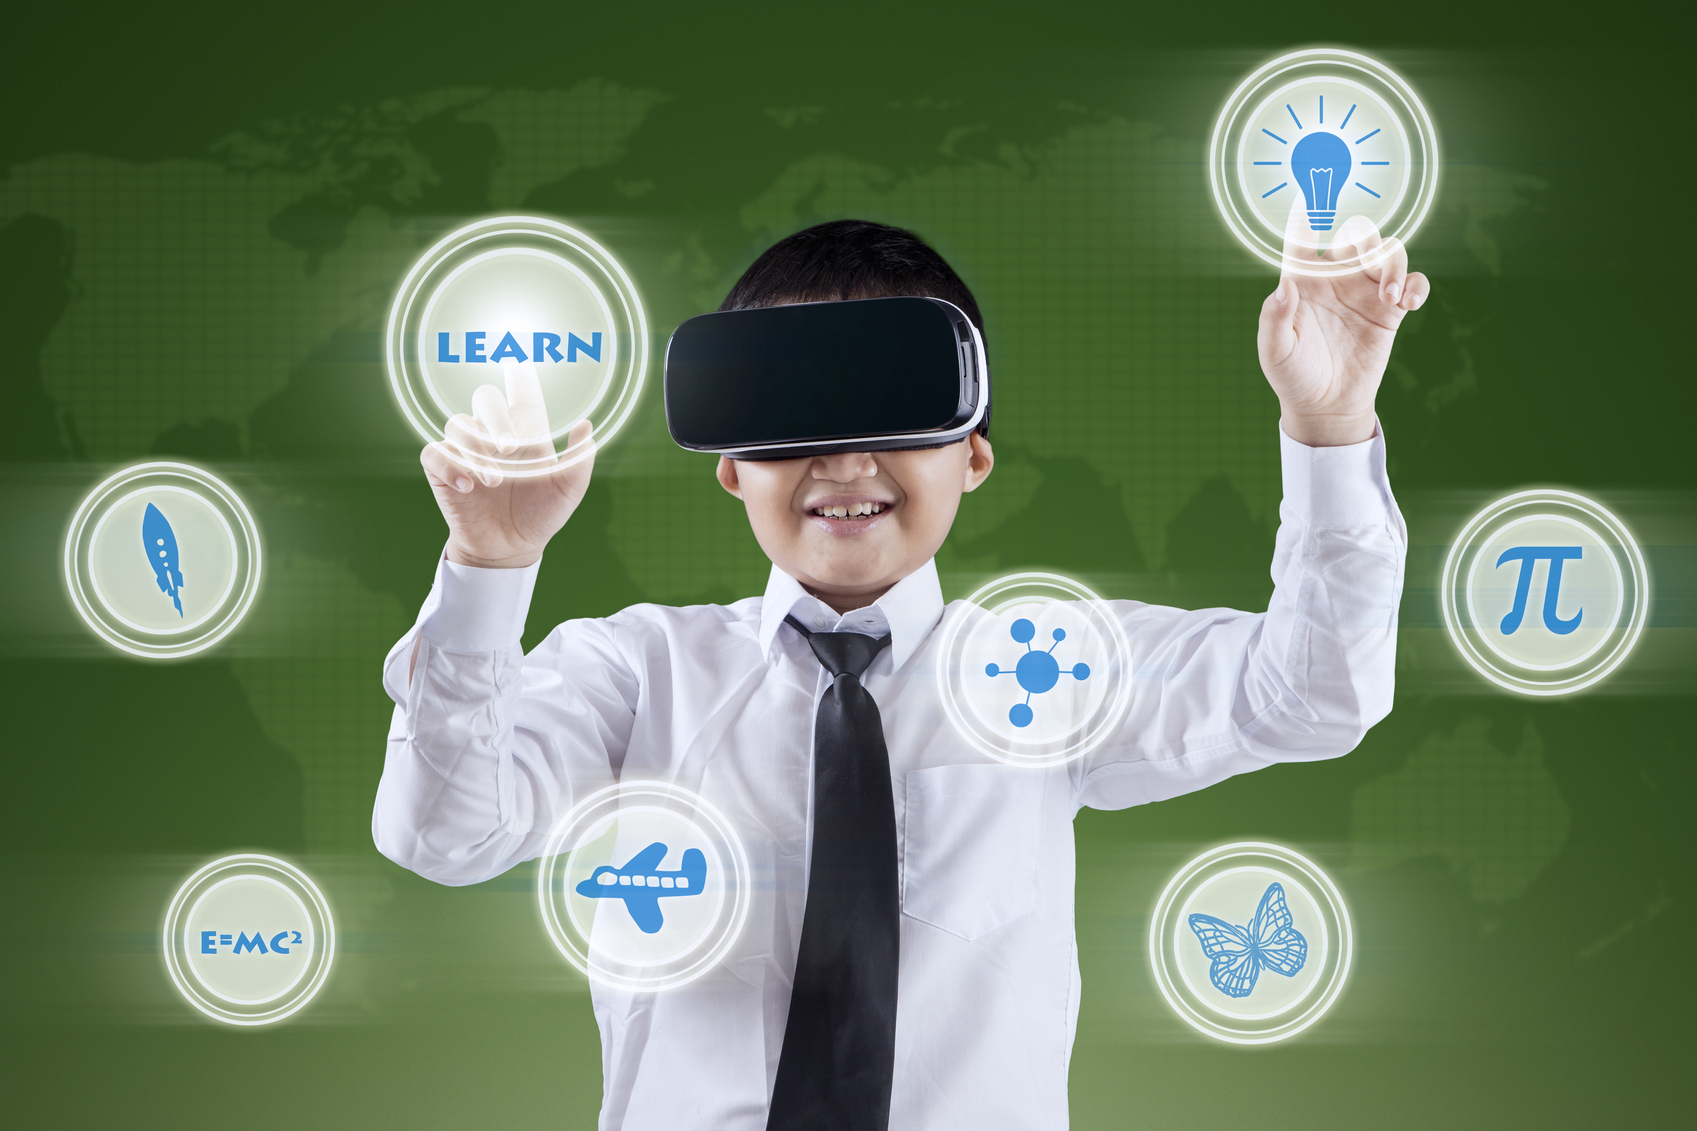 ee27914c1fa Best VR Headsets For Education - Gearbrain